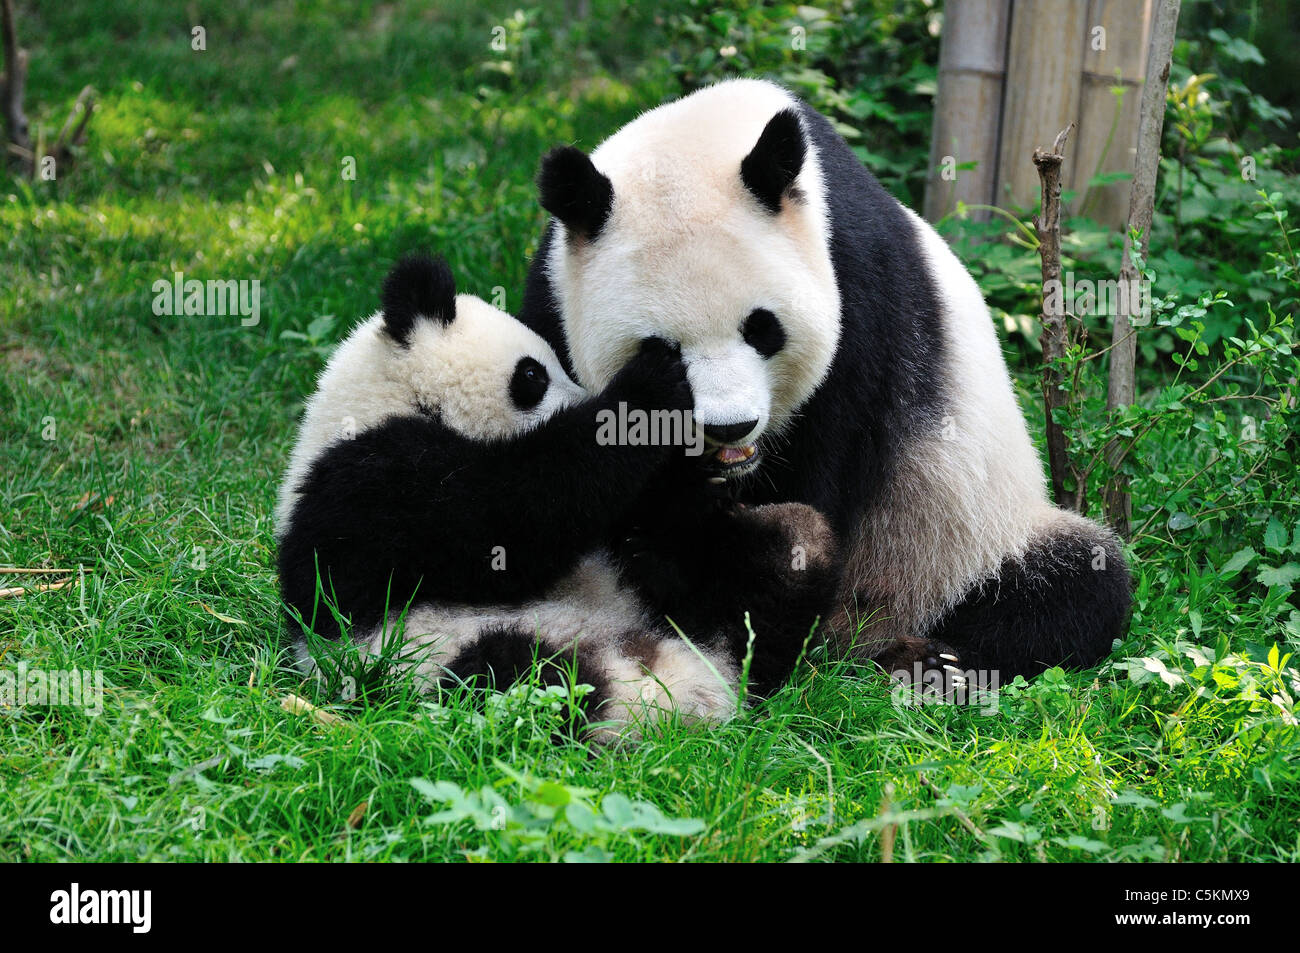 Giant pandas playing in grass. Chengdu, Sichuan, China. - Stock Image